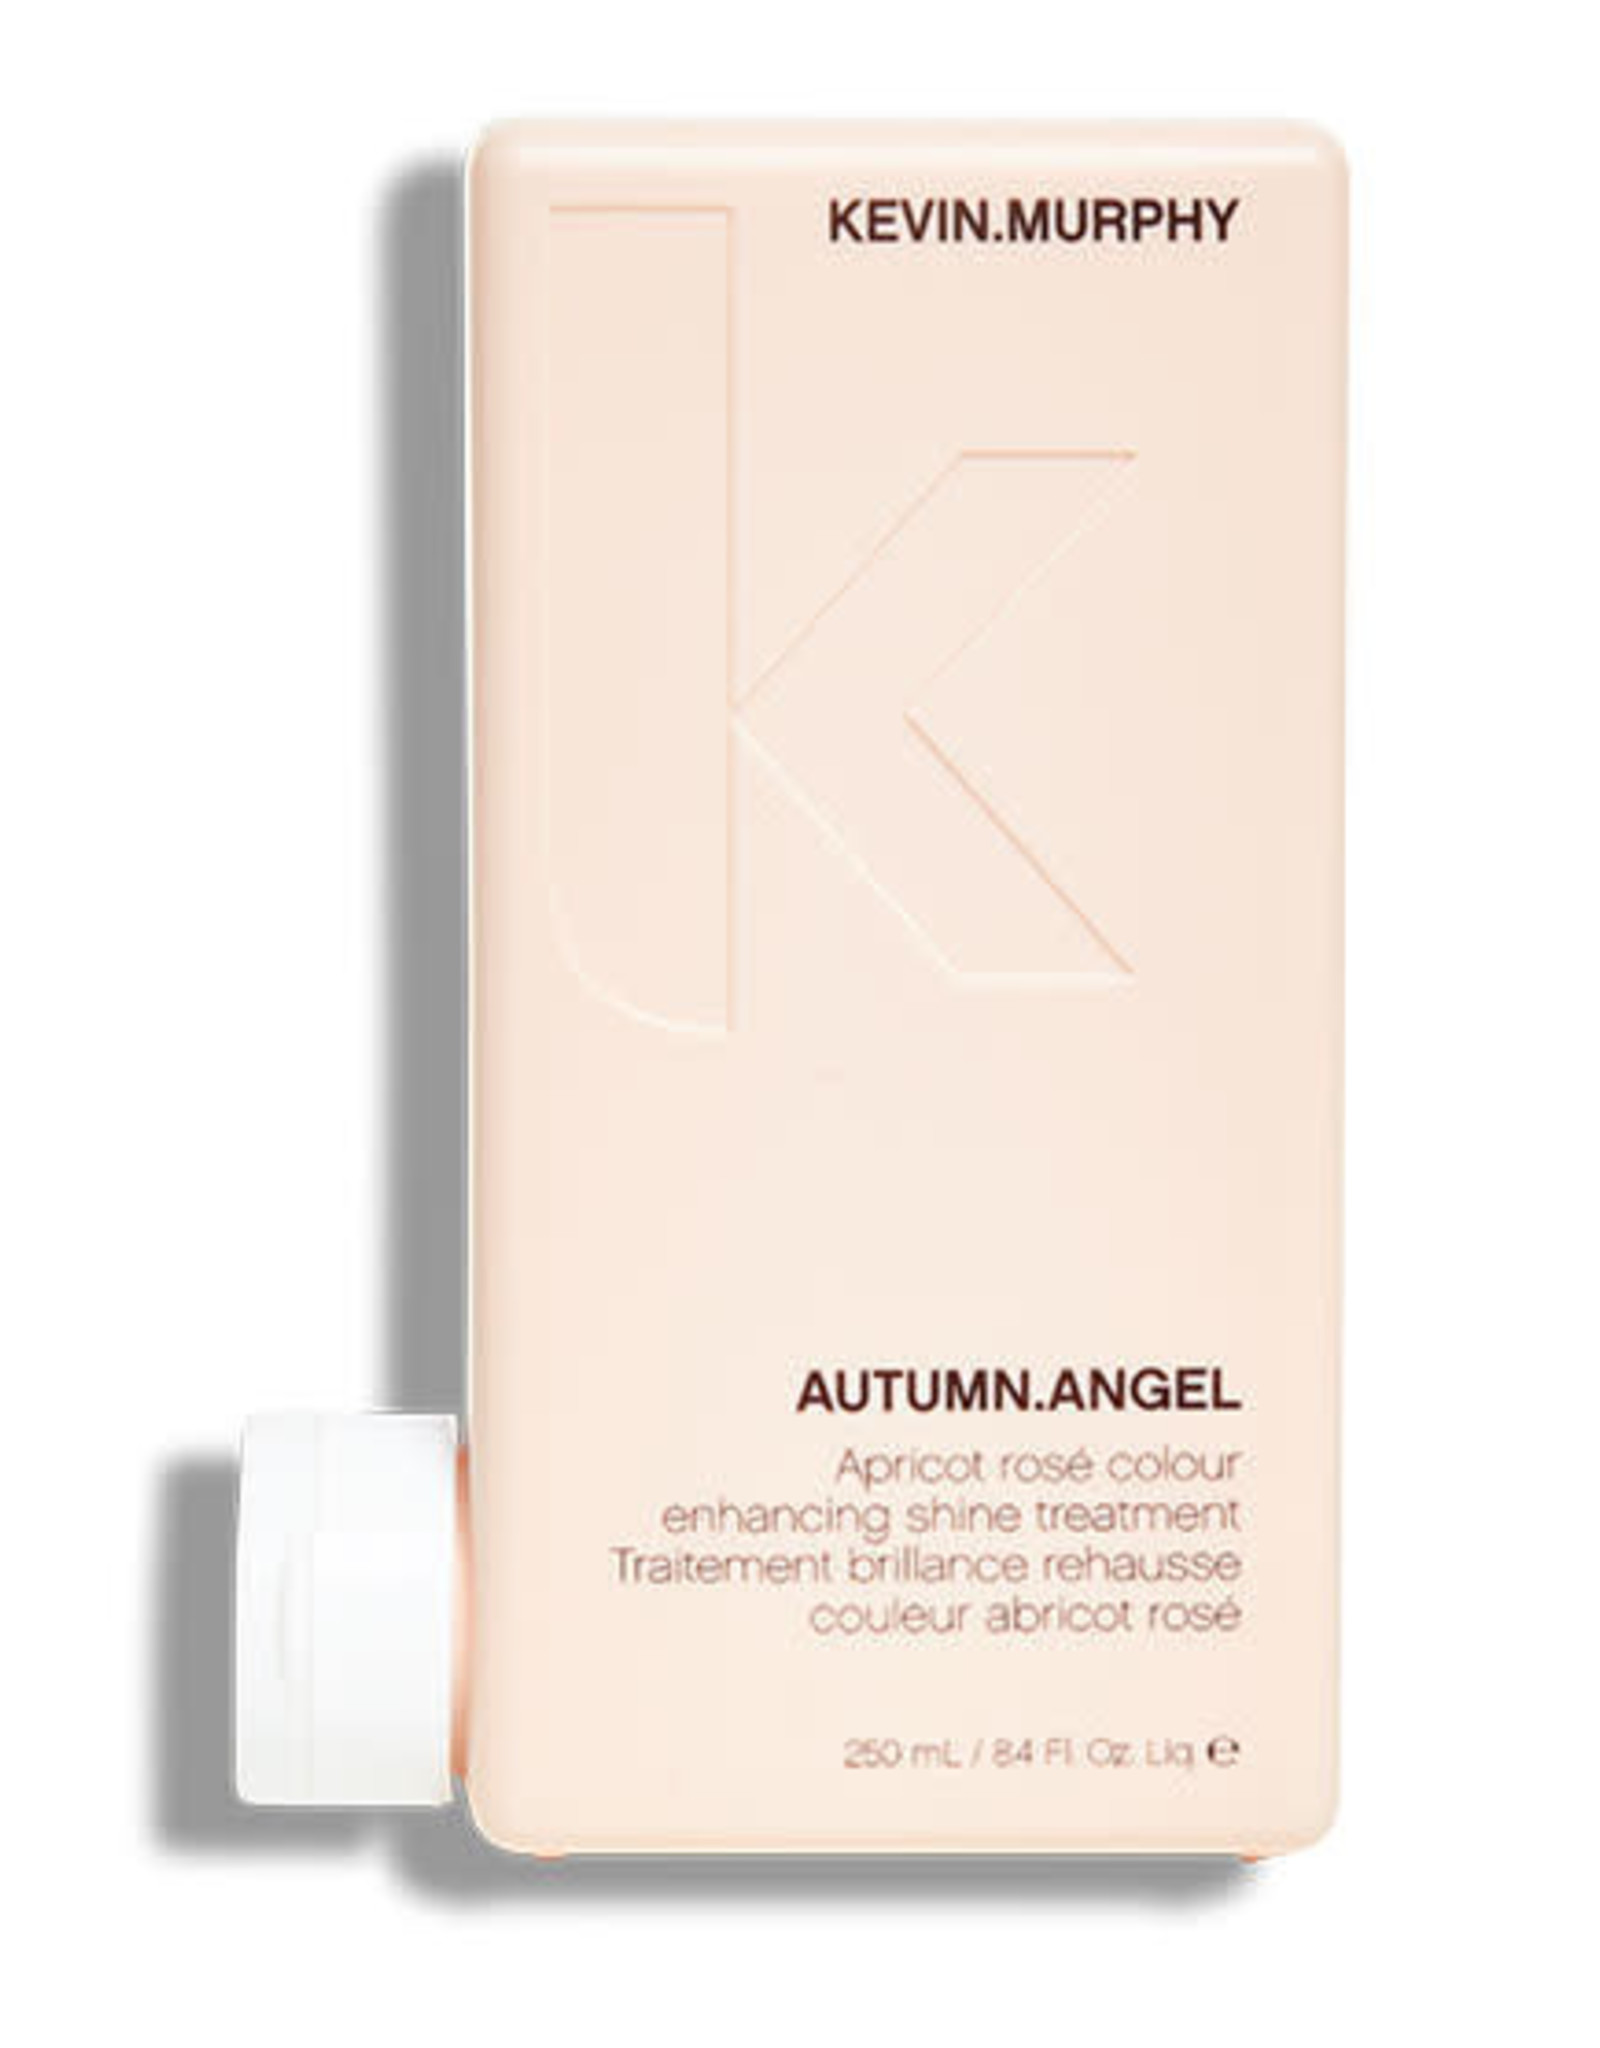 KEVIN.MURPHY AUTUMN.ANGEL